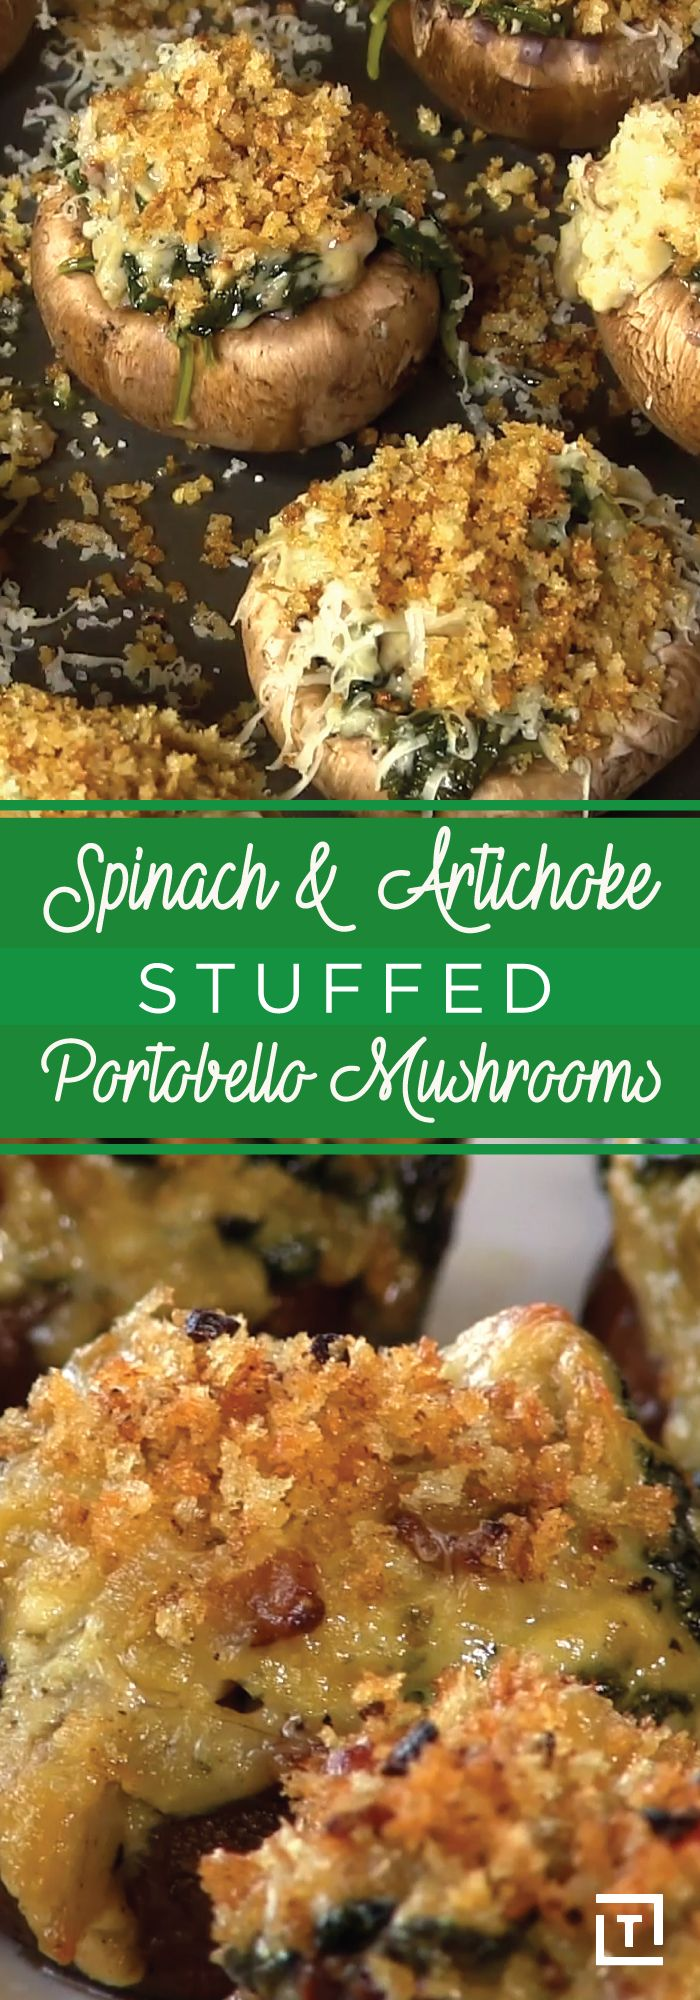 At Thrillist, we firmly believe in the importance of eating your vegetables -- it's just that we prefer to throw some butter, mascarpone, and a whole lot of cheese into the mix too. Which is why this spinach and artichoke stuffed portobello mushrooms are right up our alley -- you get your fix of healthy produce like spinach, artichokes, and mushrooms, but you don't have to forego heavenly, sharp cheddar and Parmesan, garlic-obsessed breadcrumbs, or creamy mascarpone.